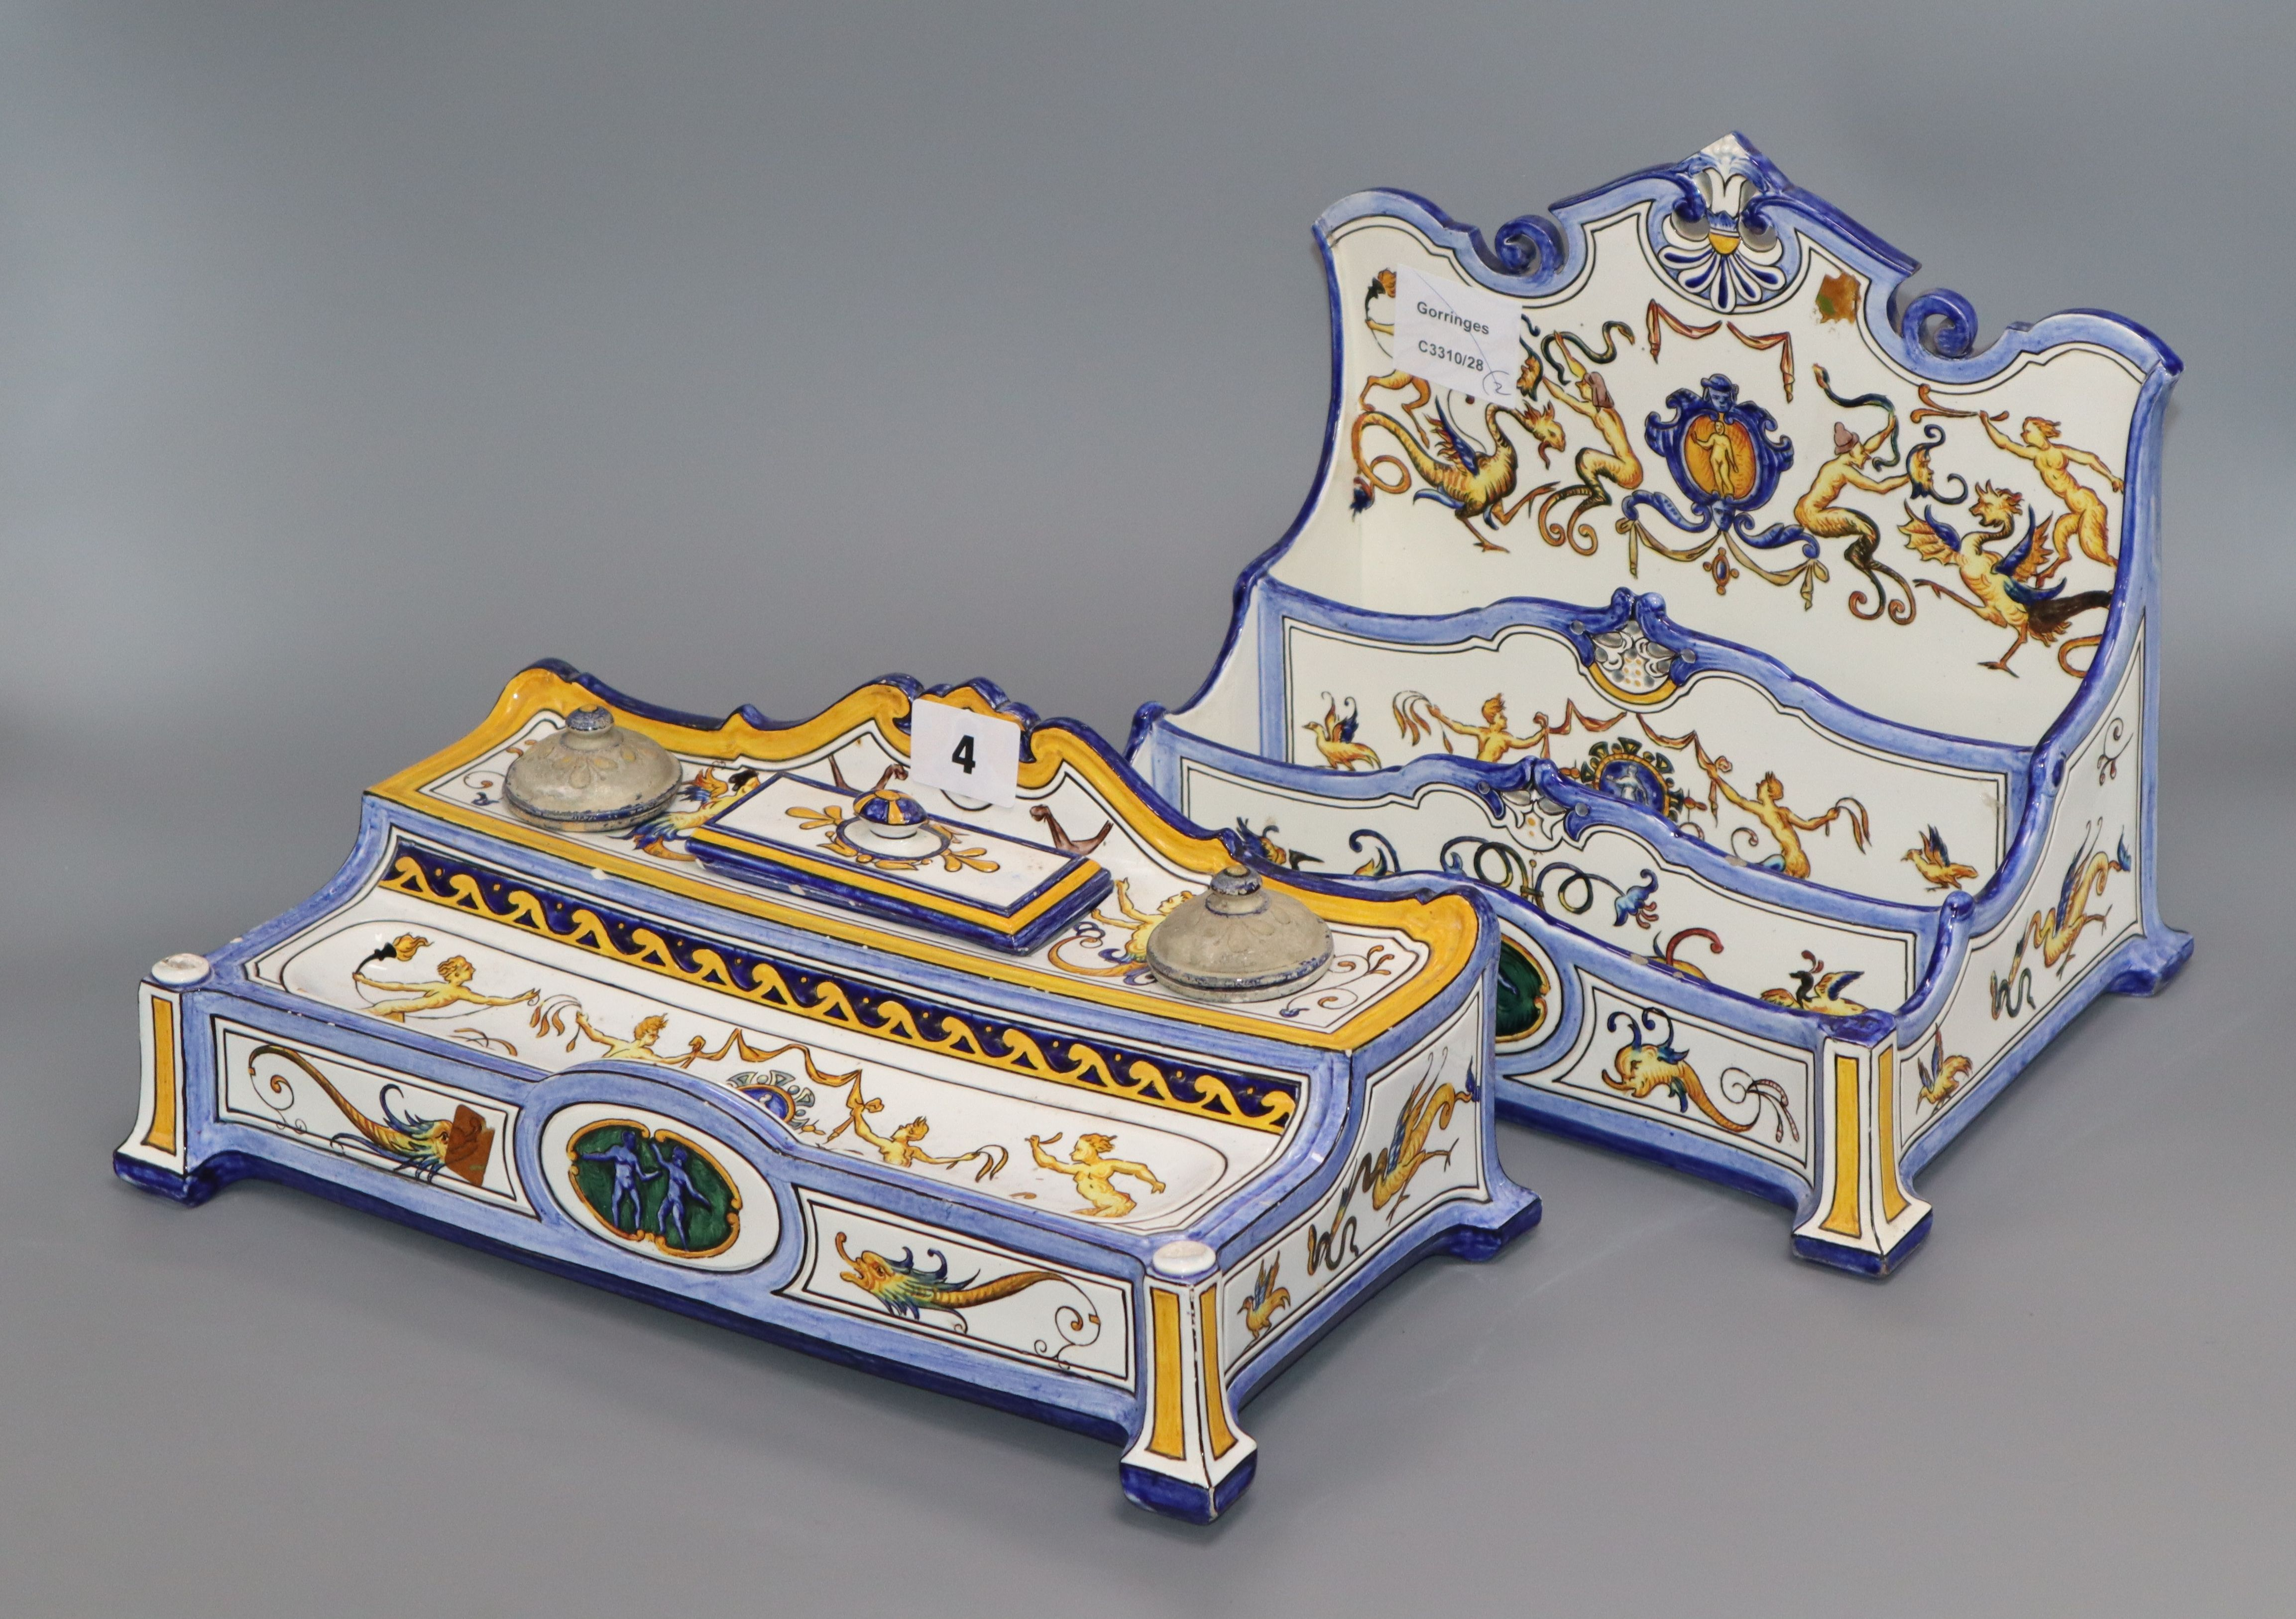 Lot 4 - A Gien faience inkstand and a similar stationery rack